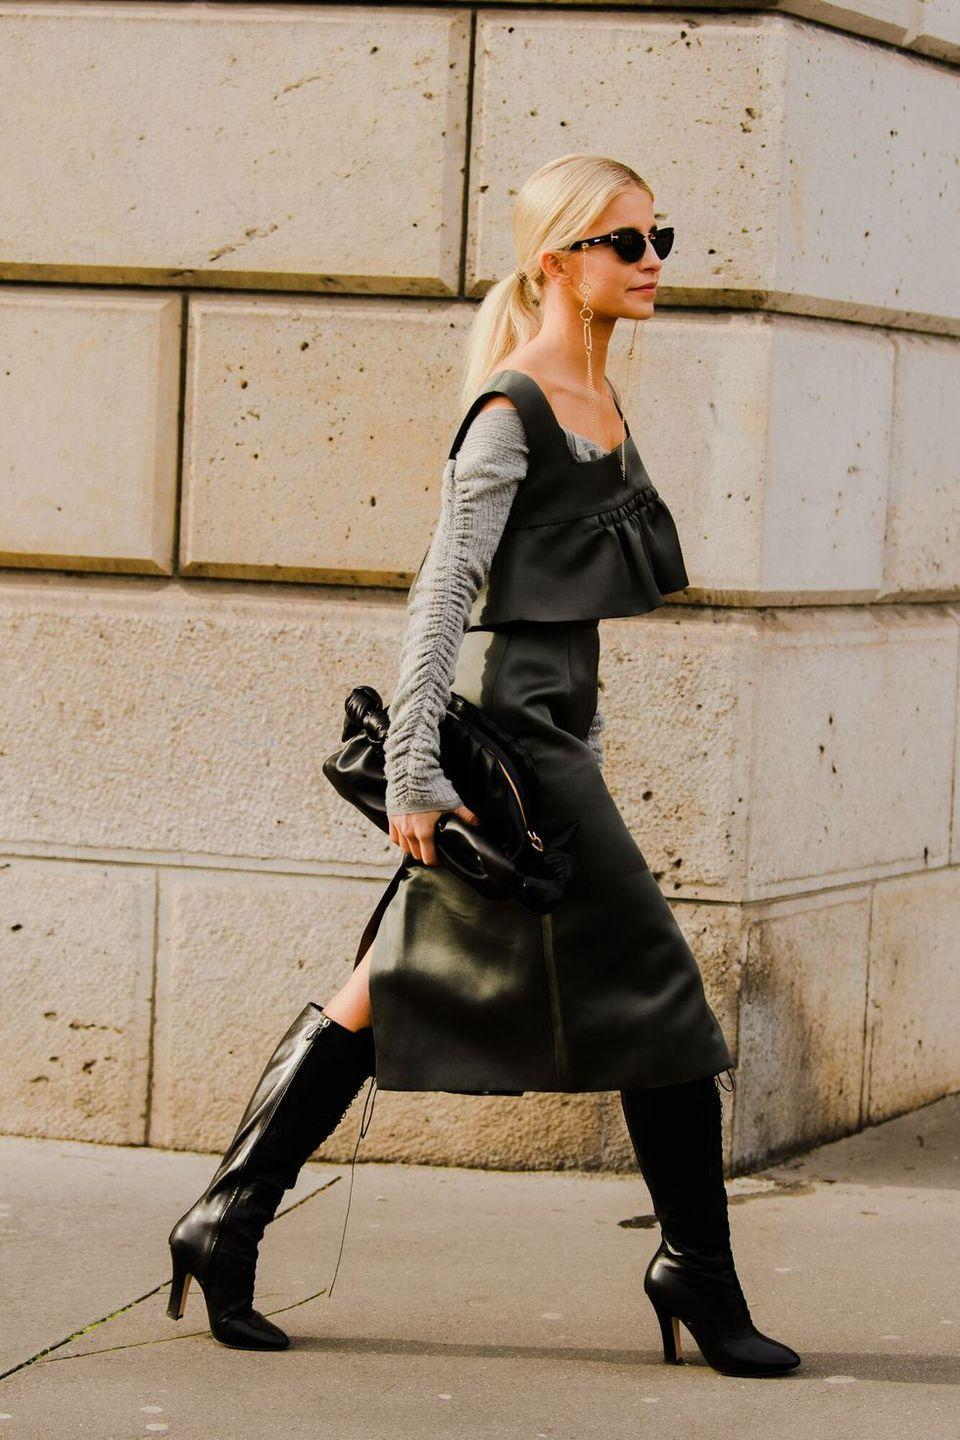 <p>Why not store your bag tote and opt for a slouchy black clutch instead? It's not like you're commuting right now anyway! </p>